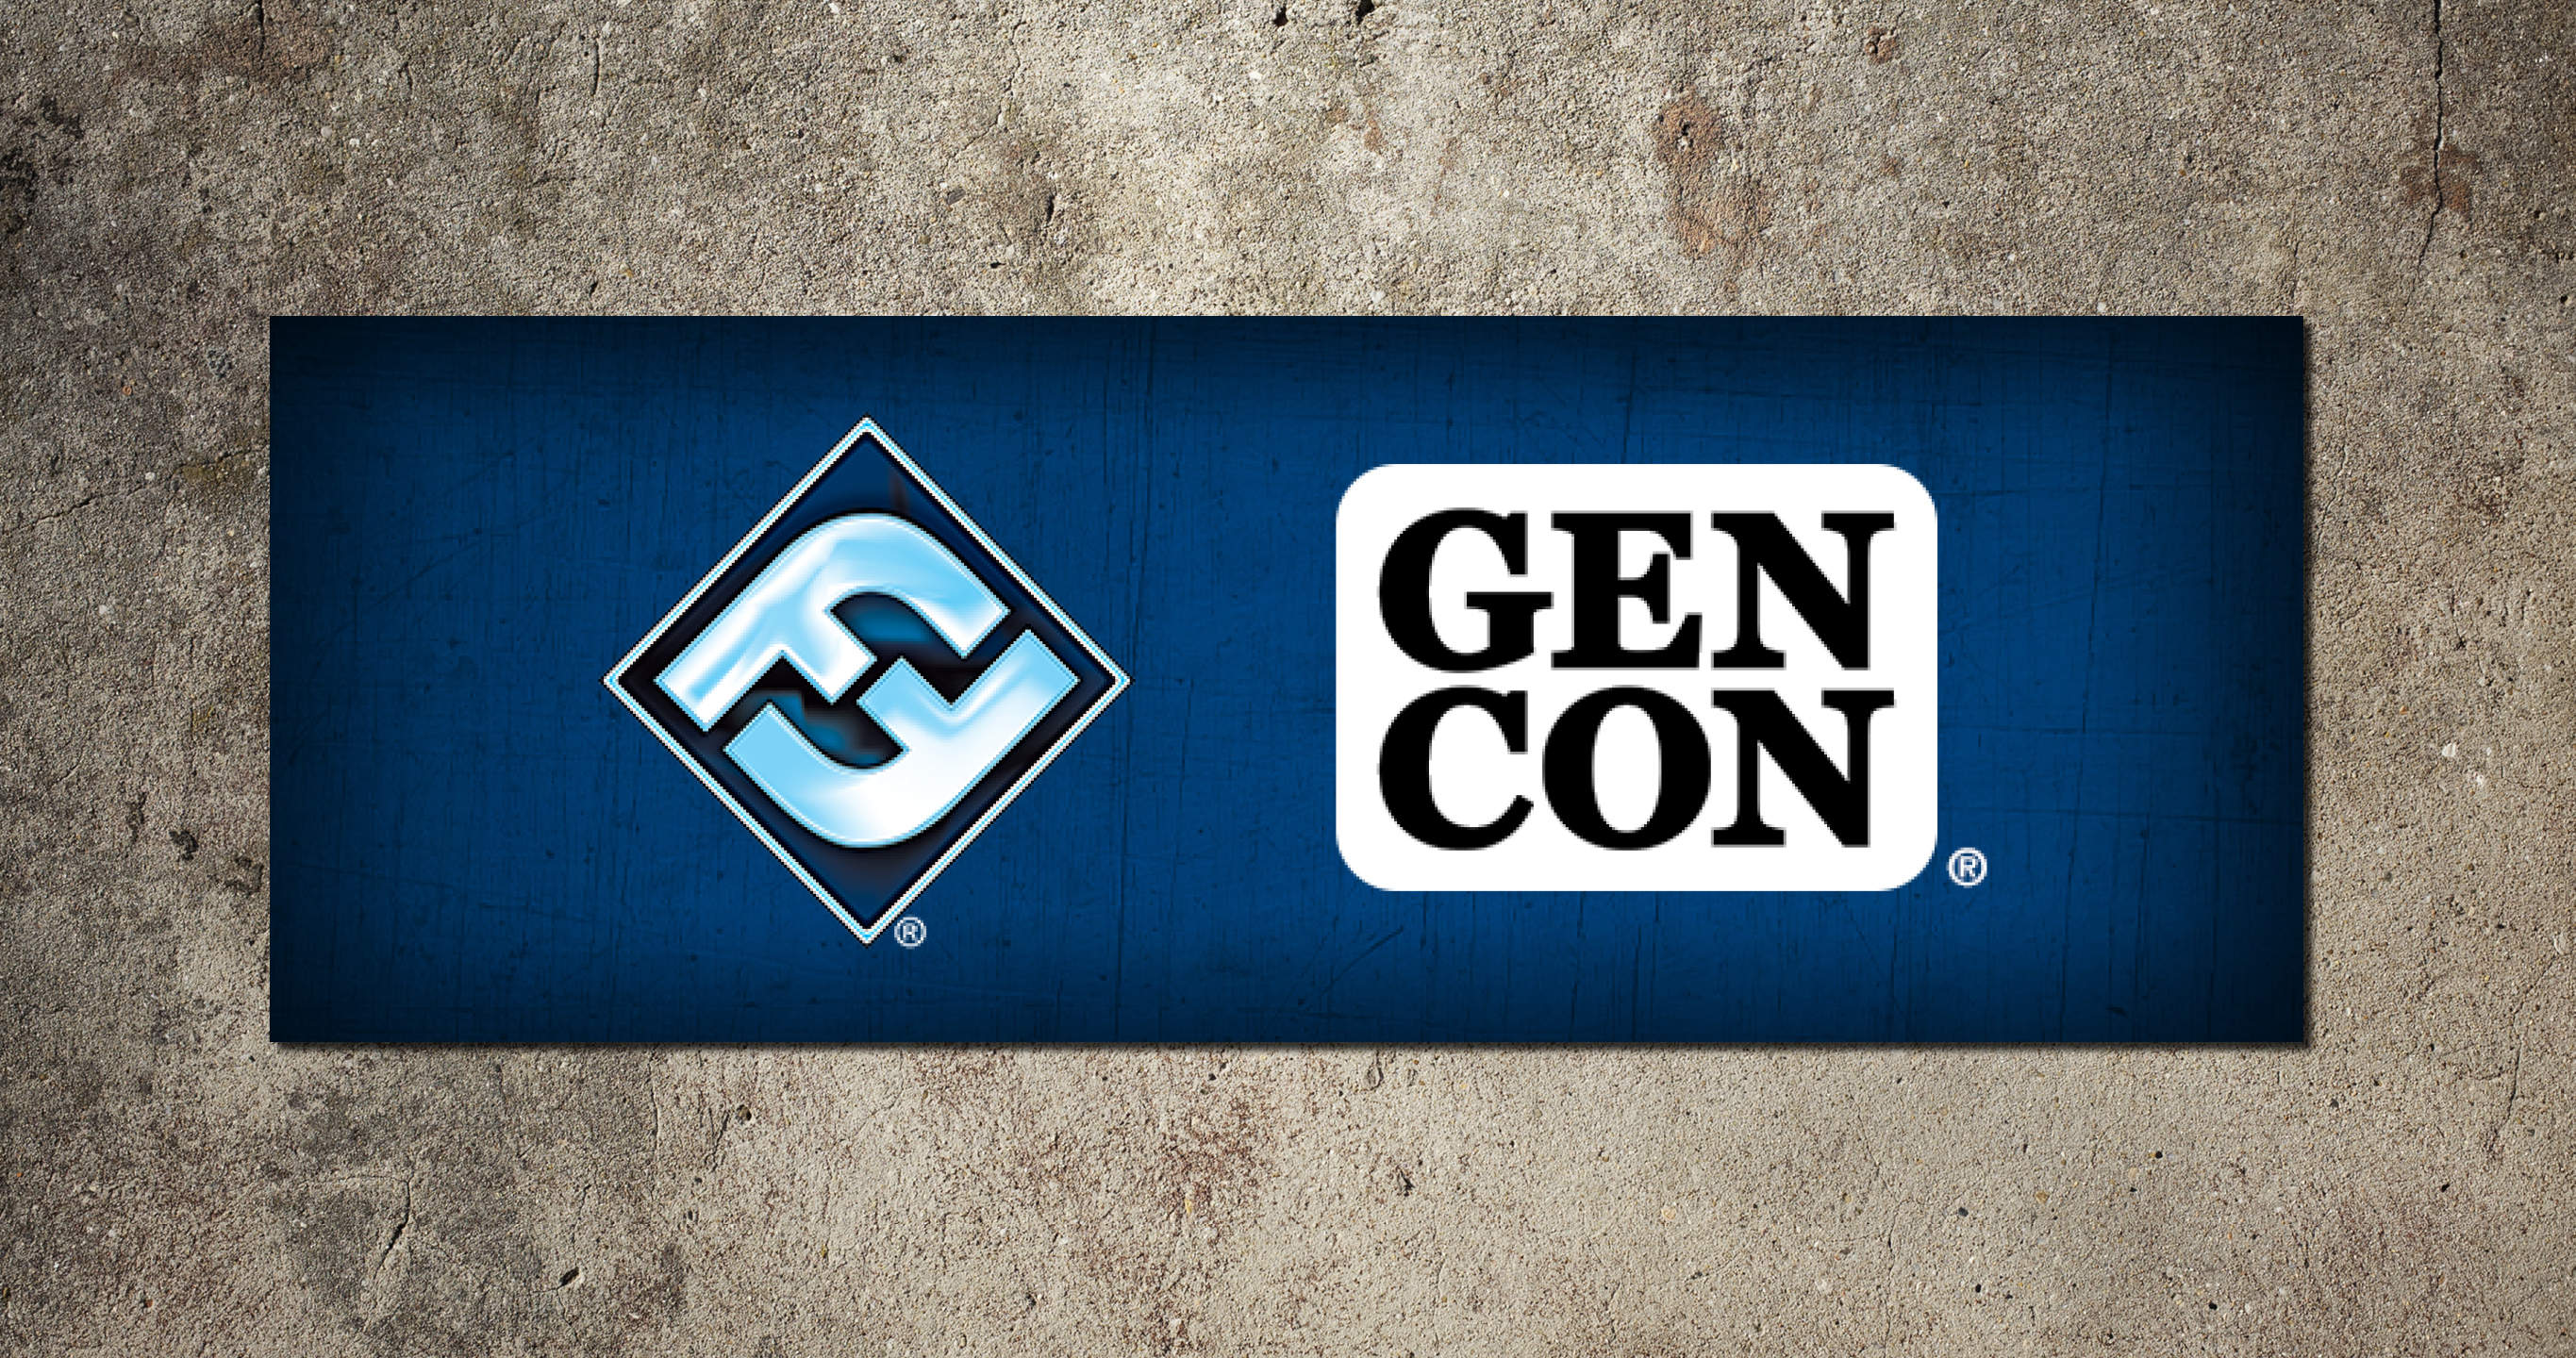 Gen Con - Day 1 Round Up